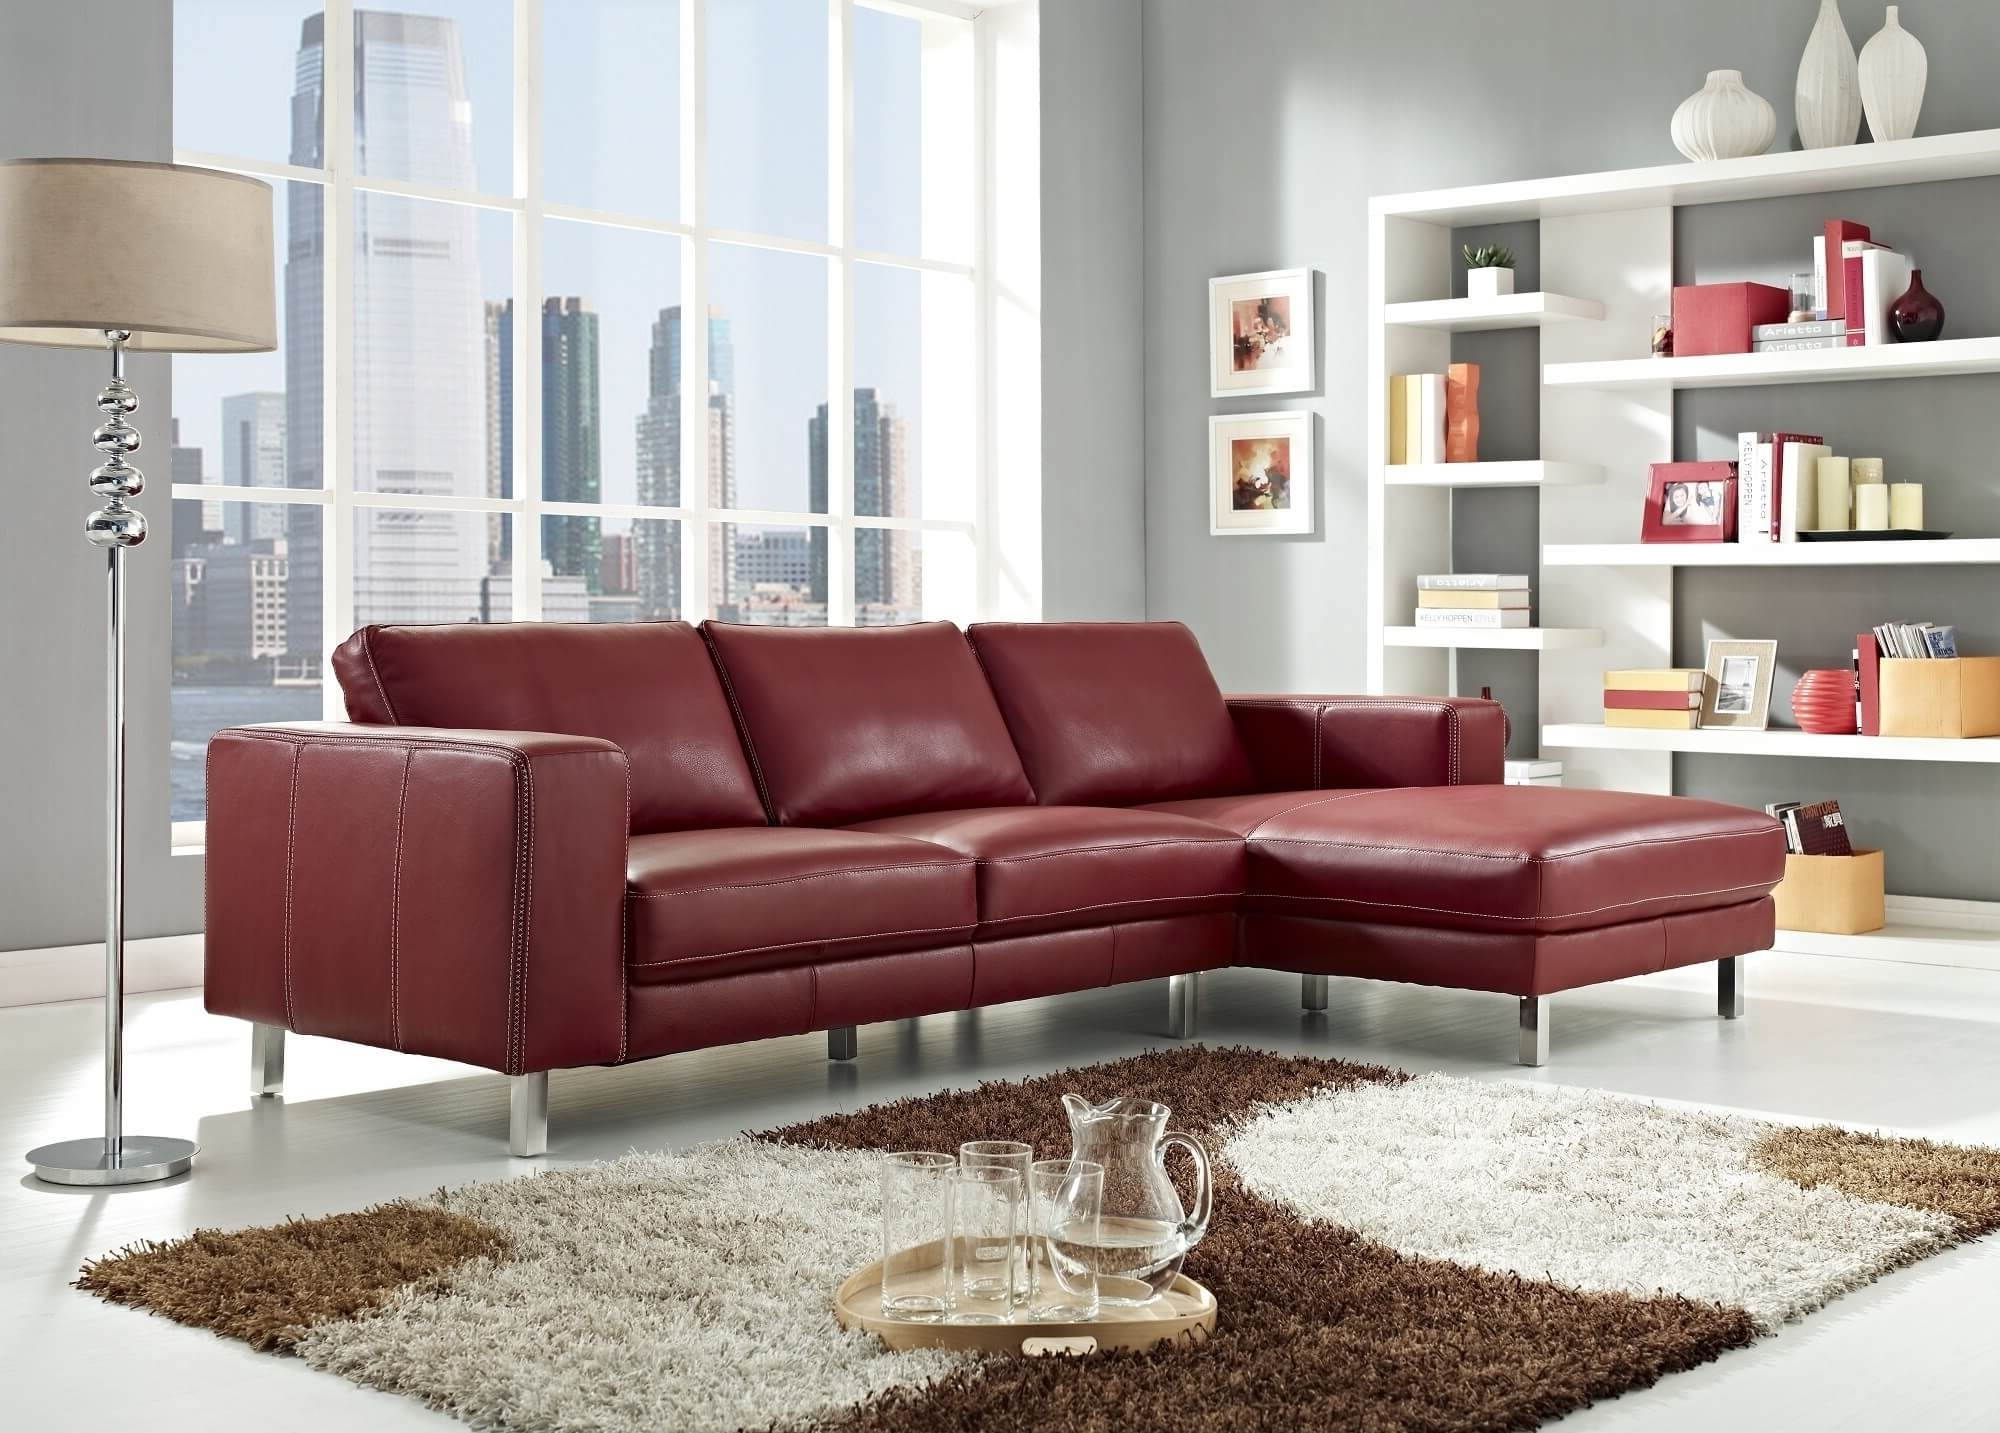 Red Sectional Sofas With Chaise Within Current Stylish Modern Red Sectional Sofas (View 12 of 15)